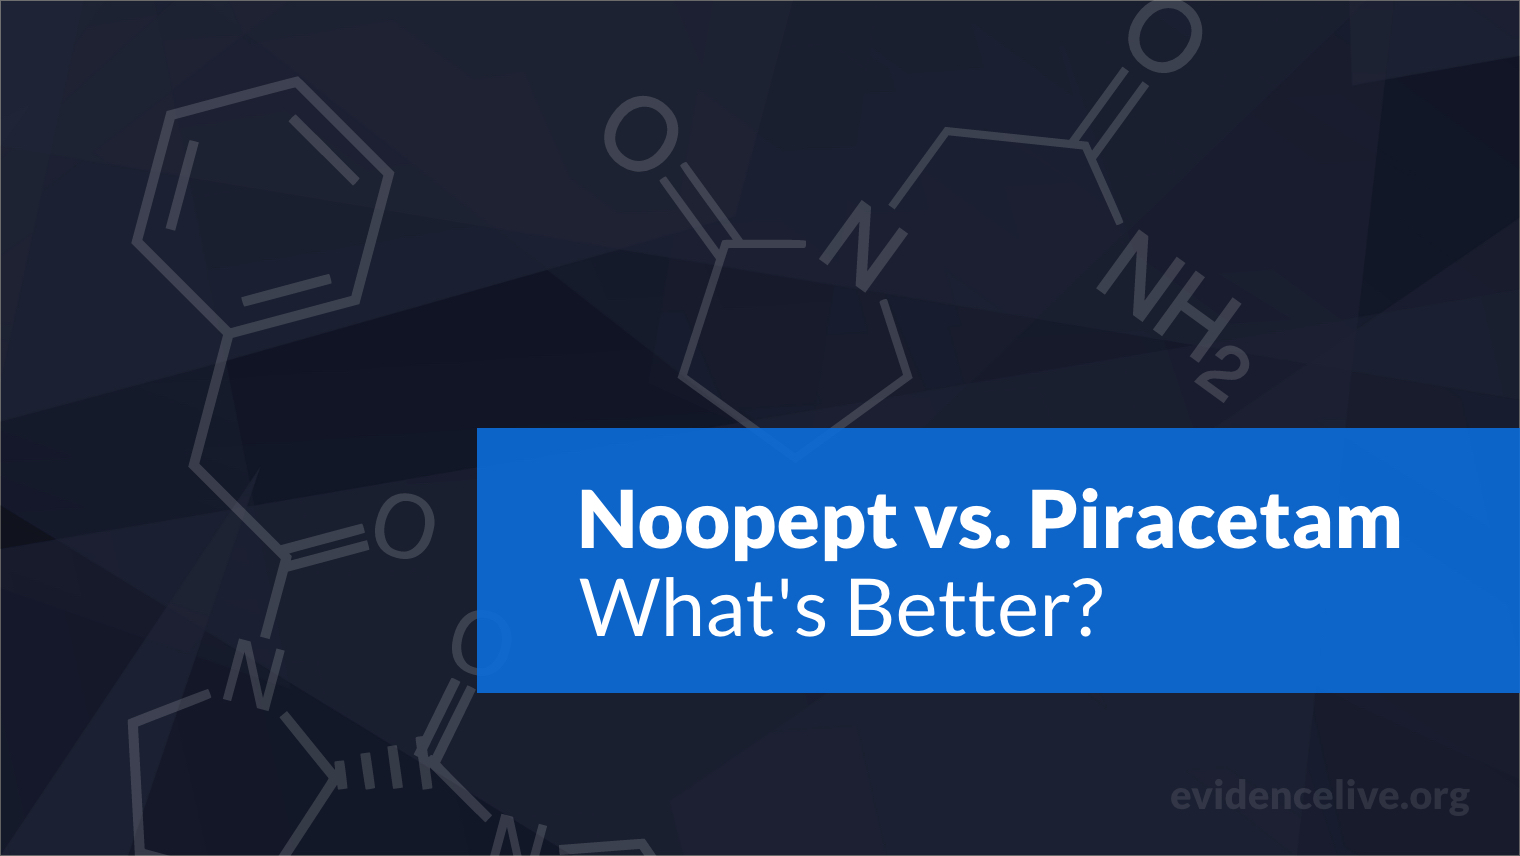 Noopept vs. Piracetam: Differences and What's Better